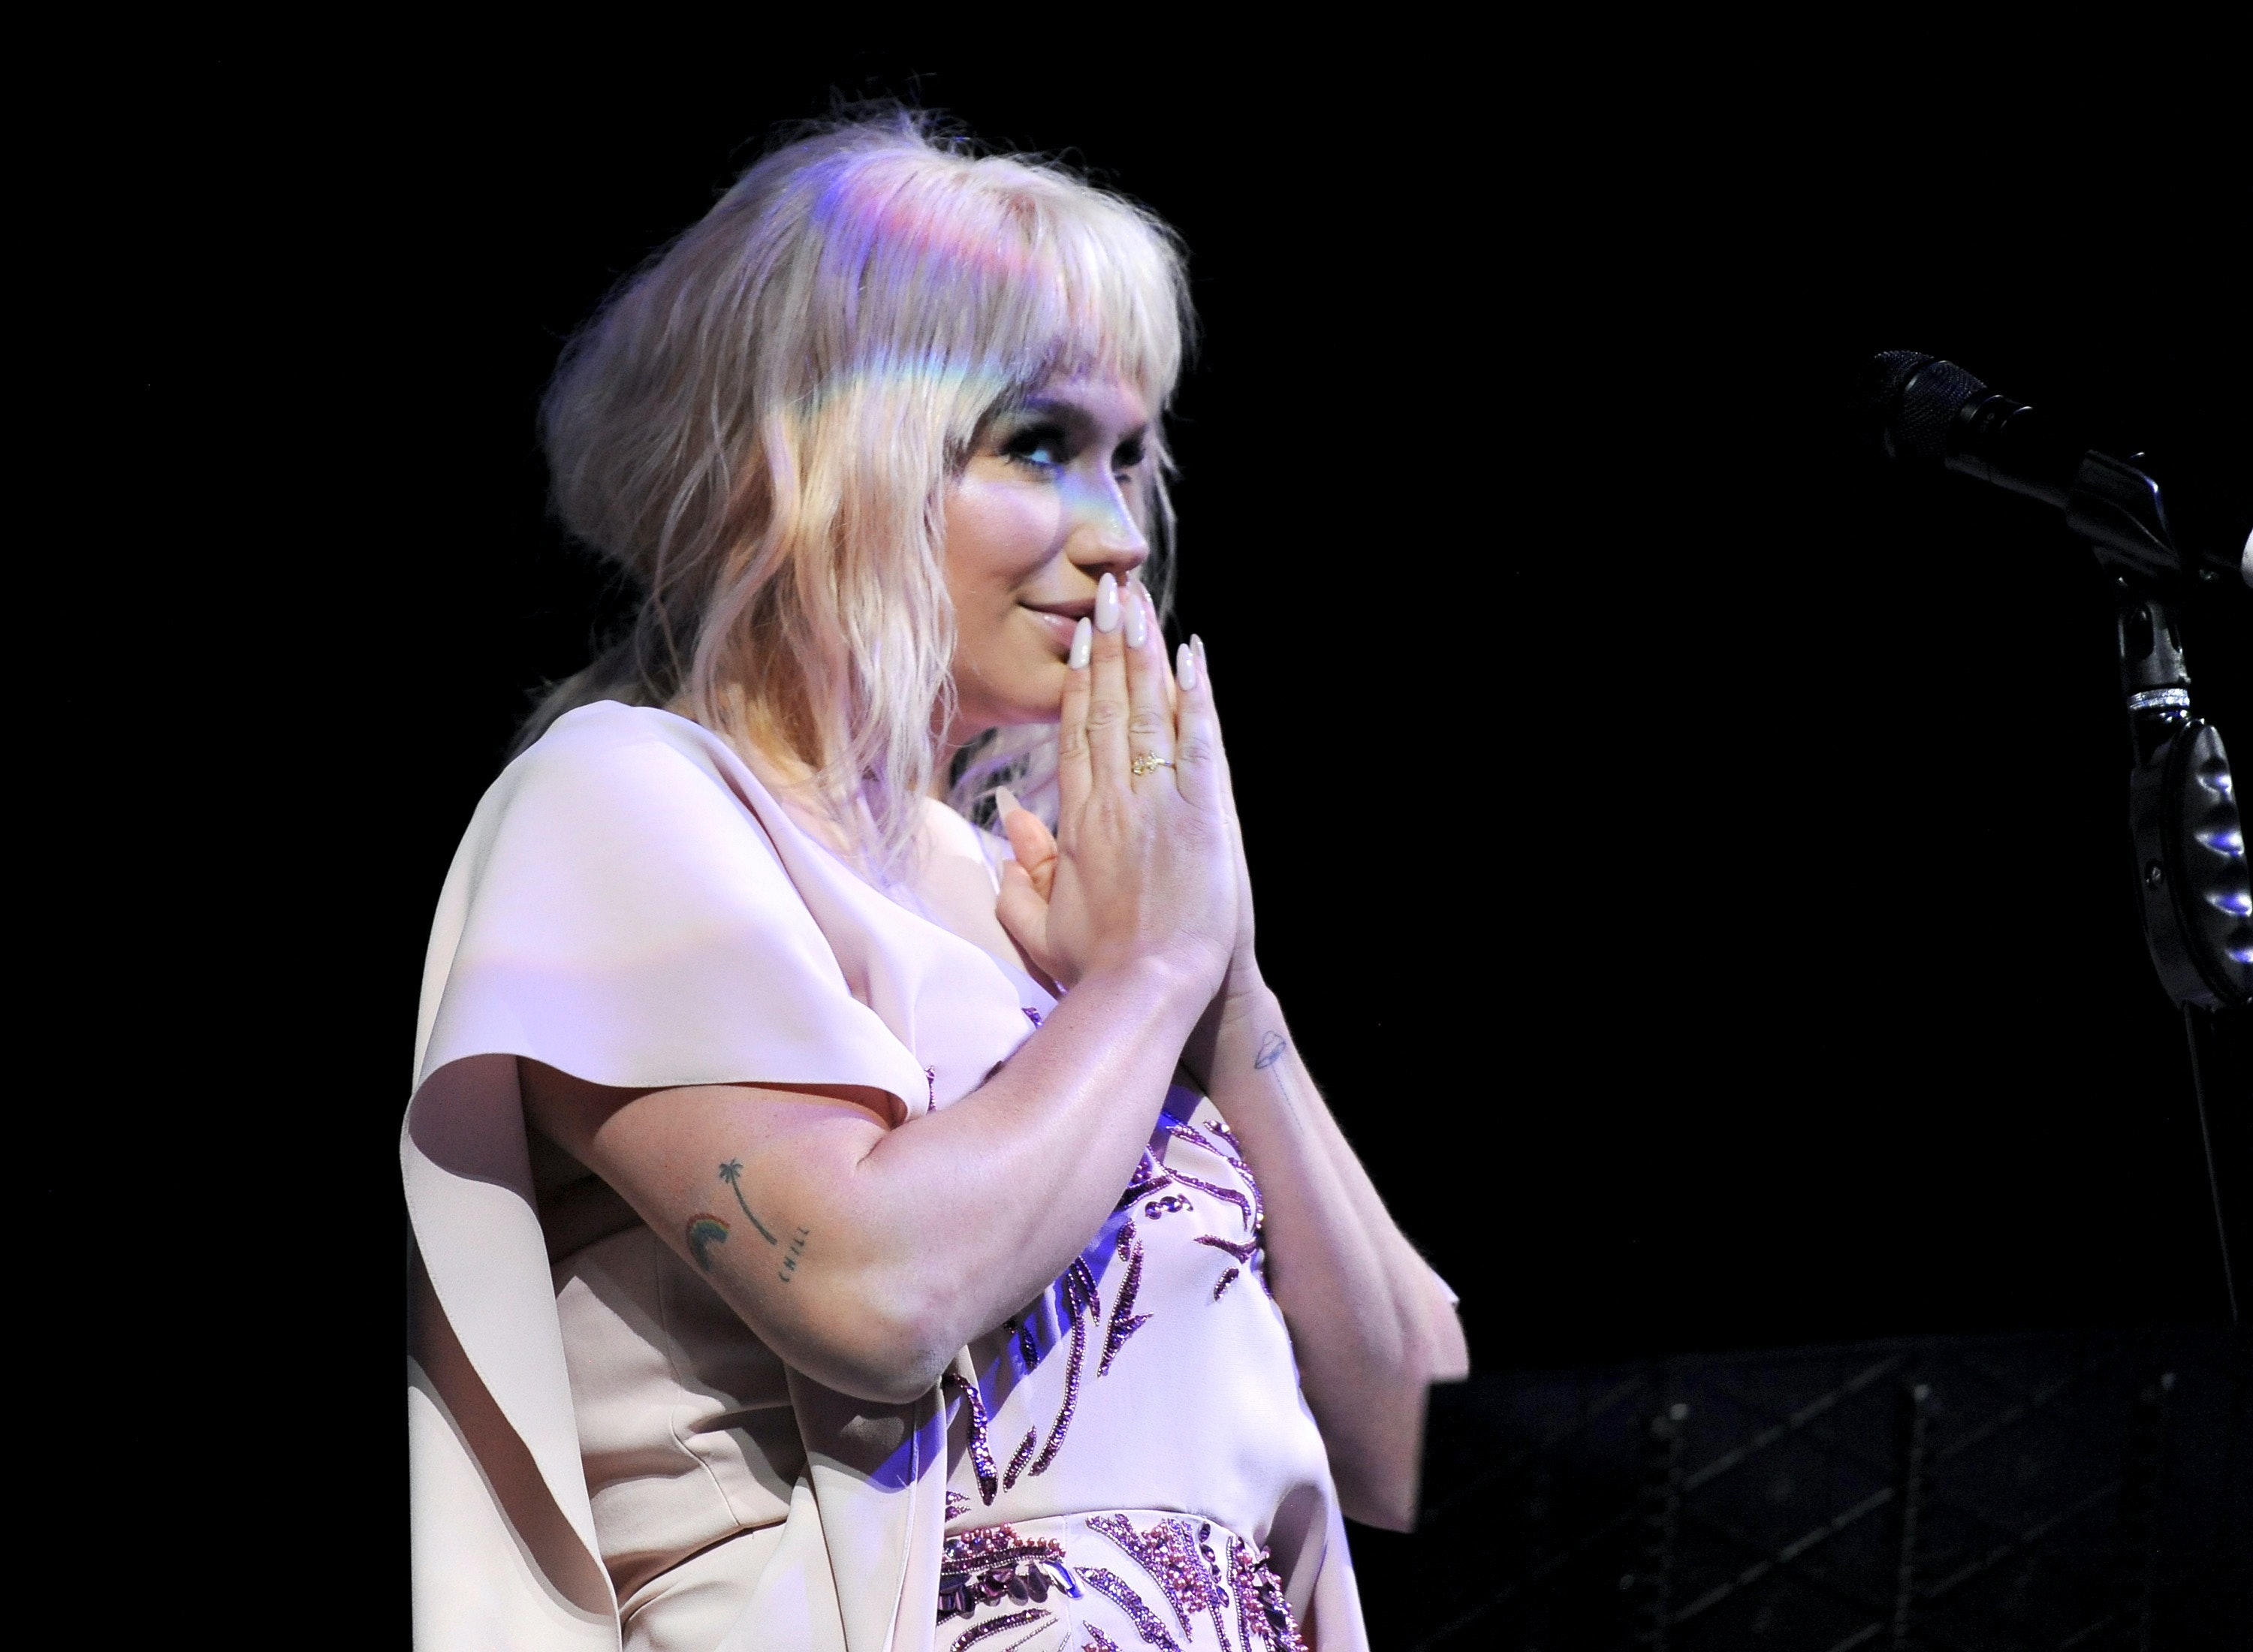 Kesha covers Lady Gaga's 'Til It Happens To You' at charity event